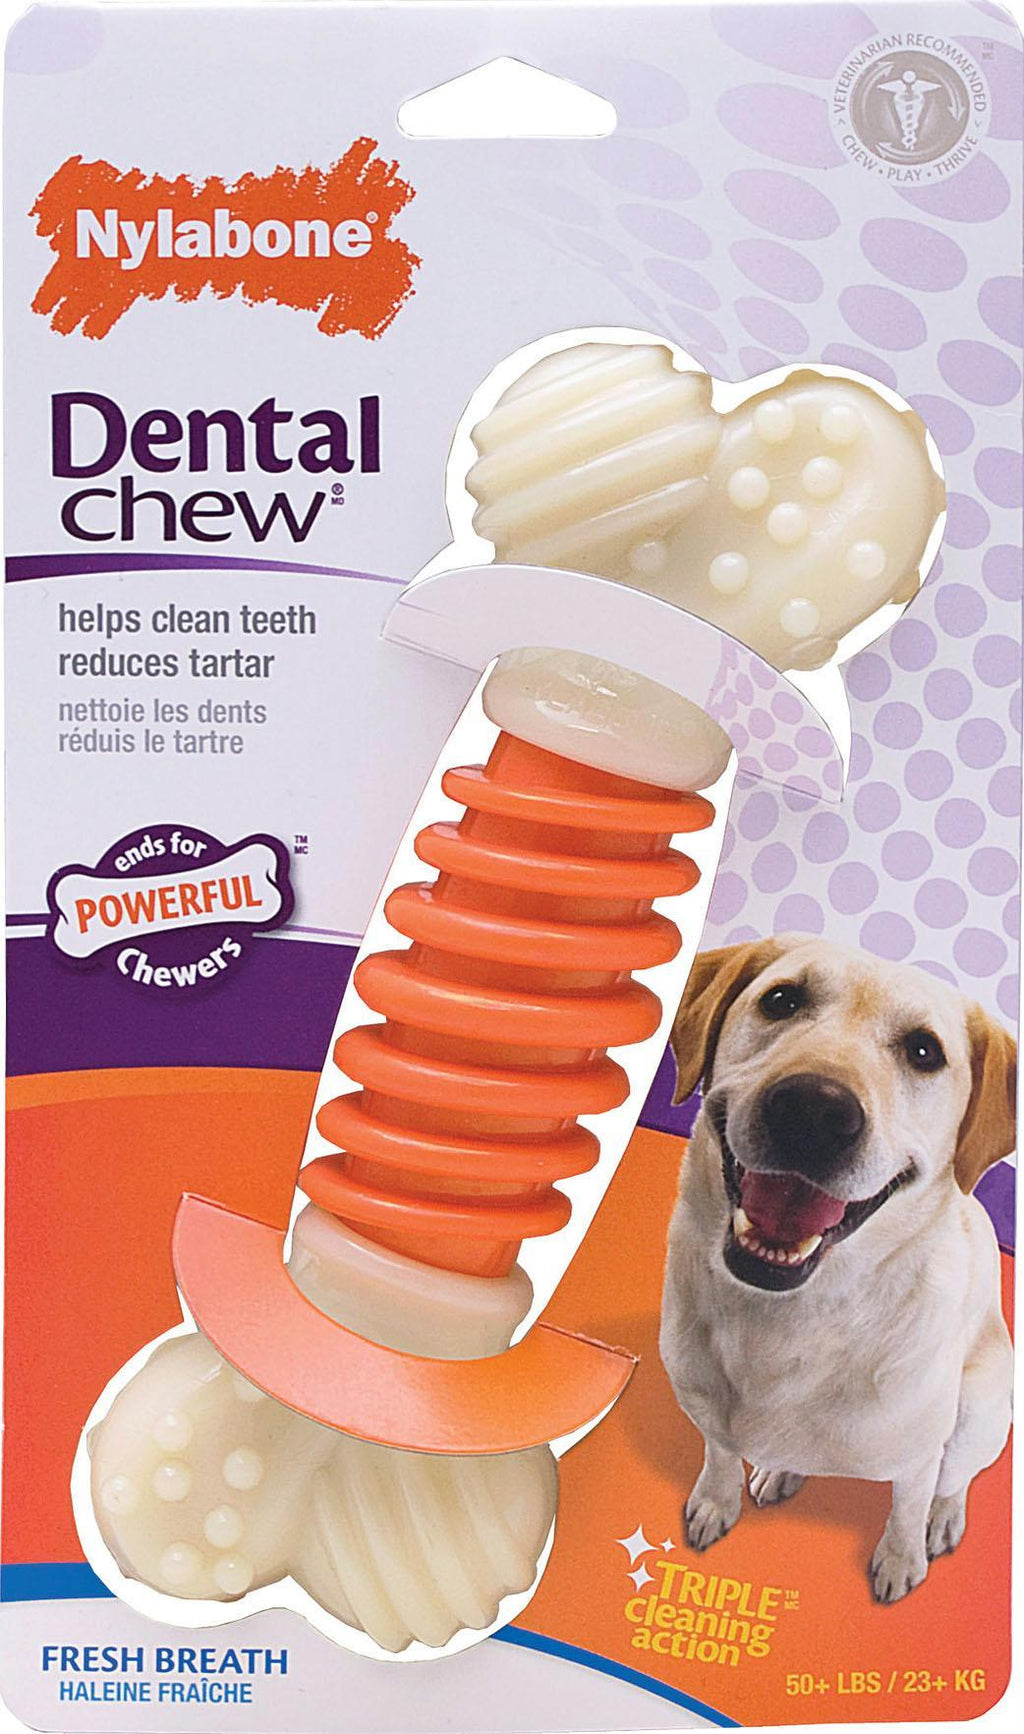 Dental Chew Pro Action - iPupnStuff.com